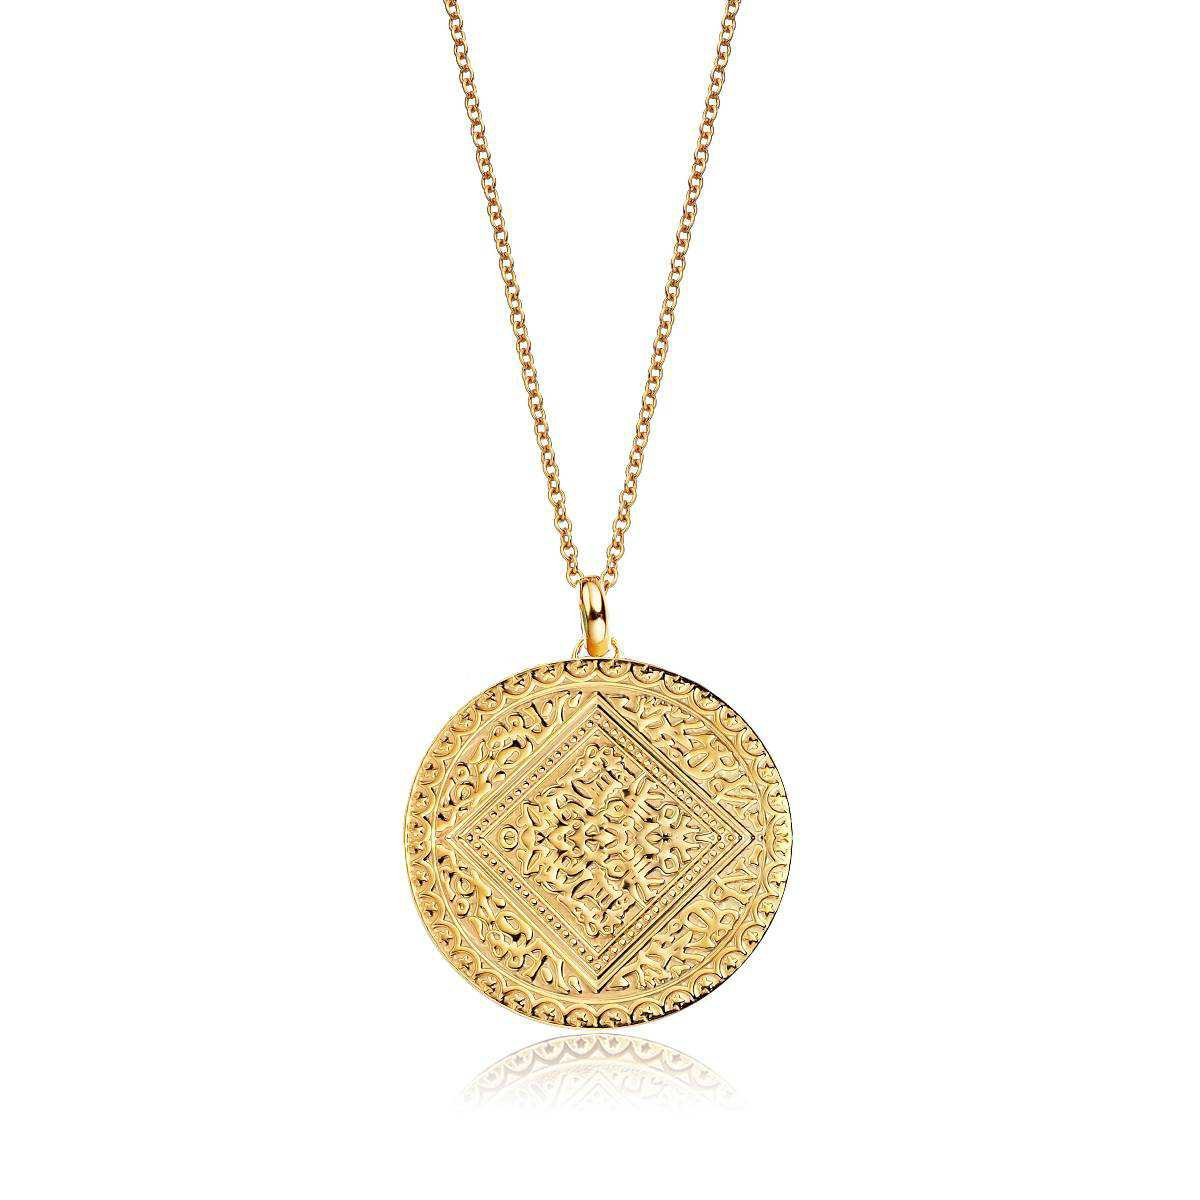 French-Girl Style—Gold Pendant Necklace | Who What Wear UK